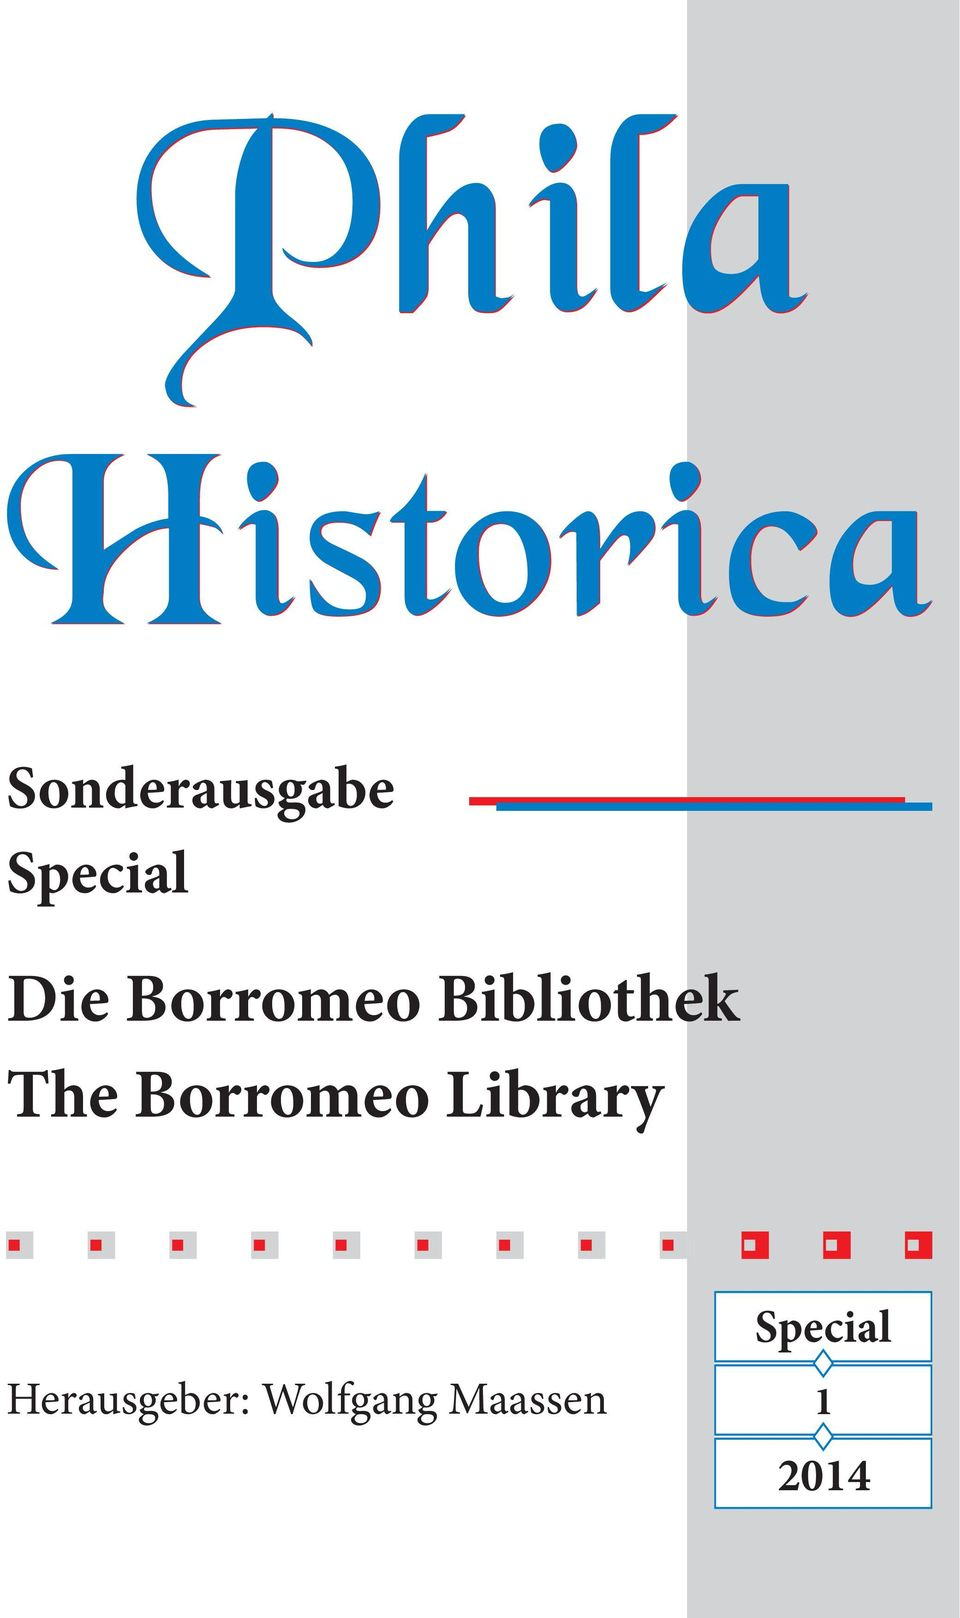 The Borromeo Library